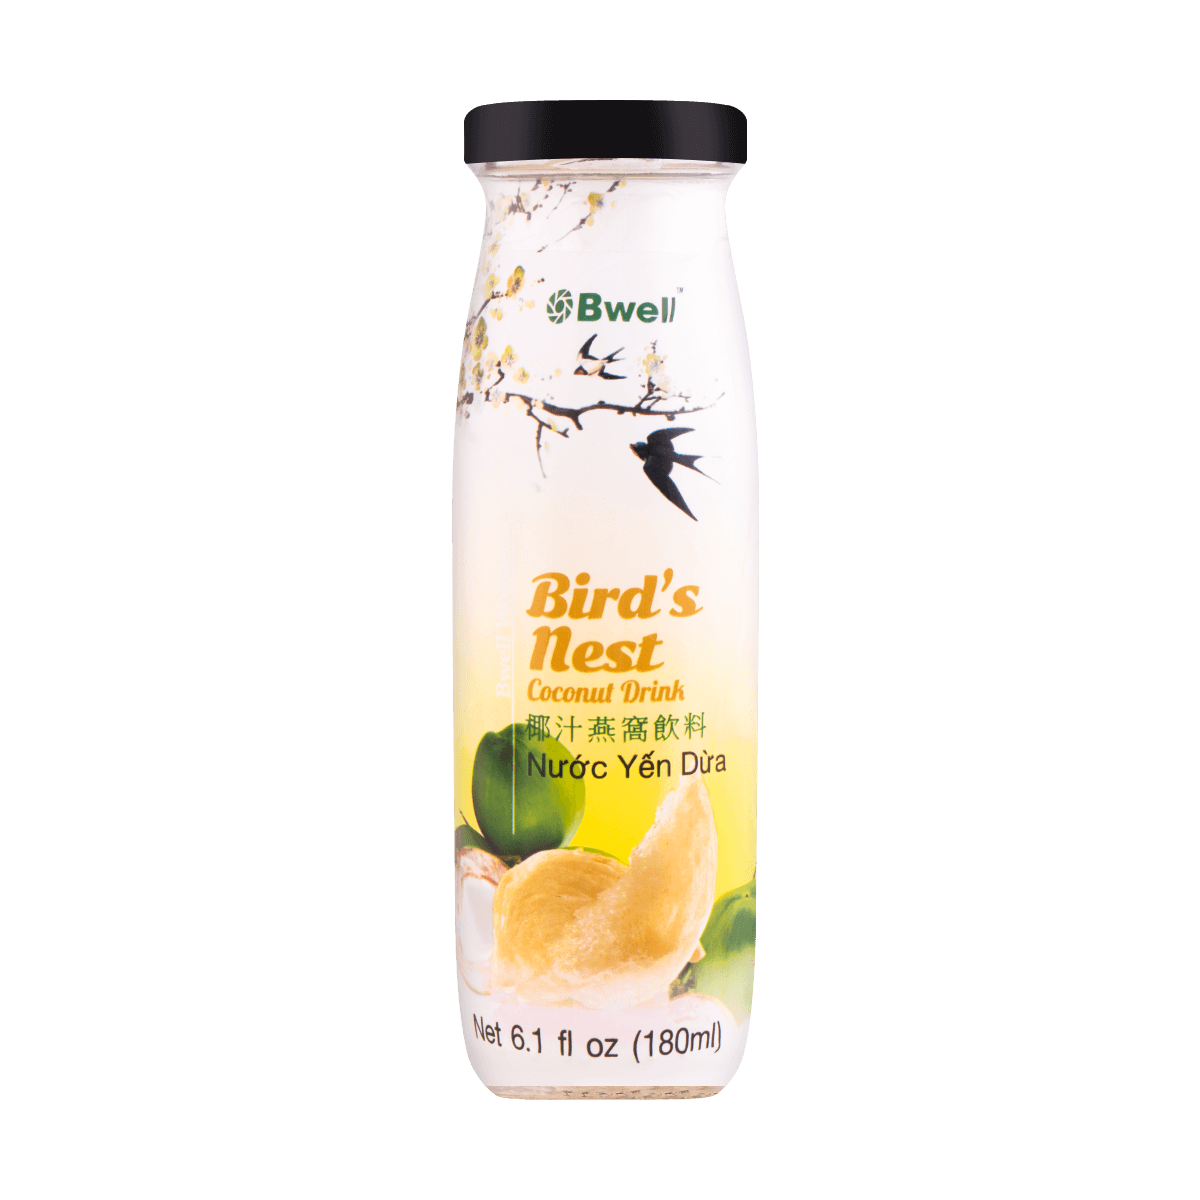 Yamibuy.com:Customer reviews:BWELL Bird's Nest Coconut Drink 180ml